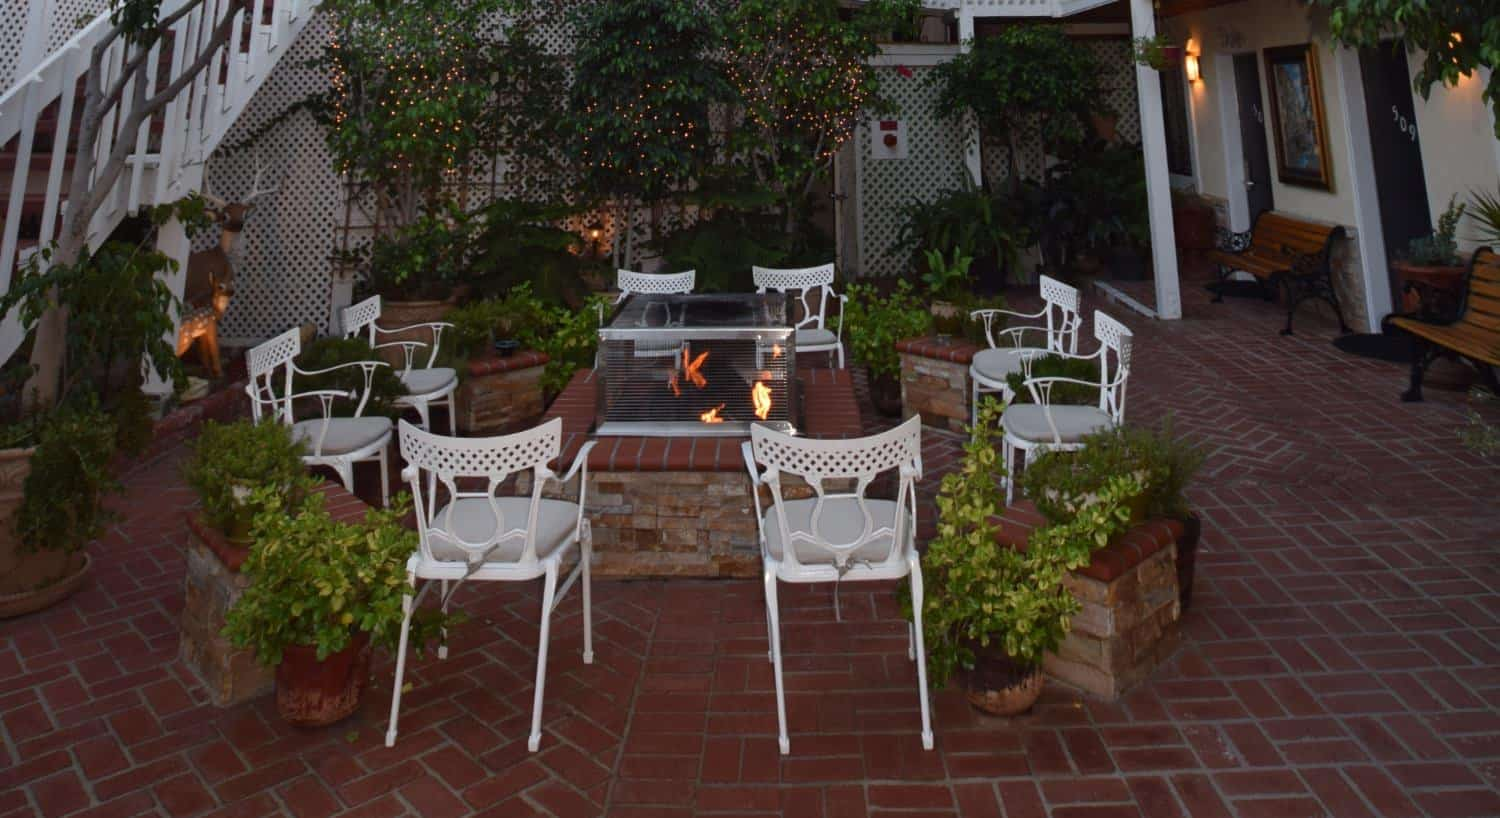 Courtyard patio with red brick, white chairs around a stone fire pit with greenery and sparkling lights around